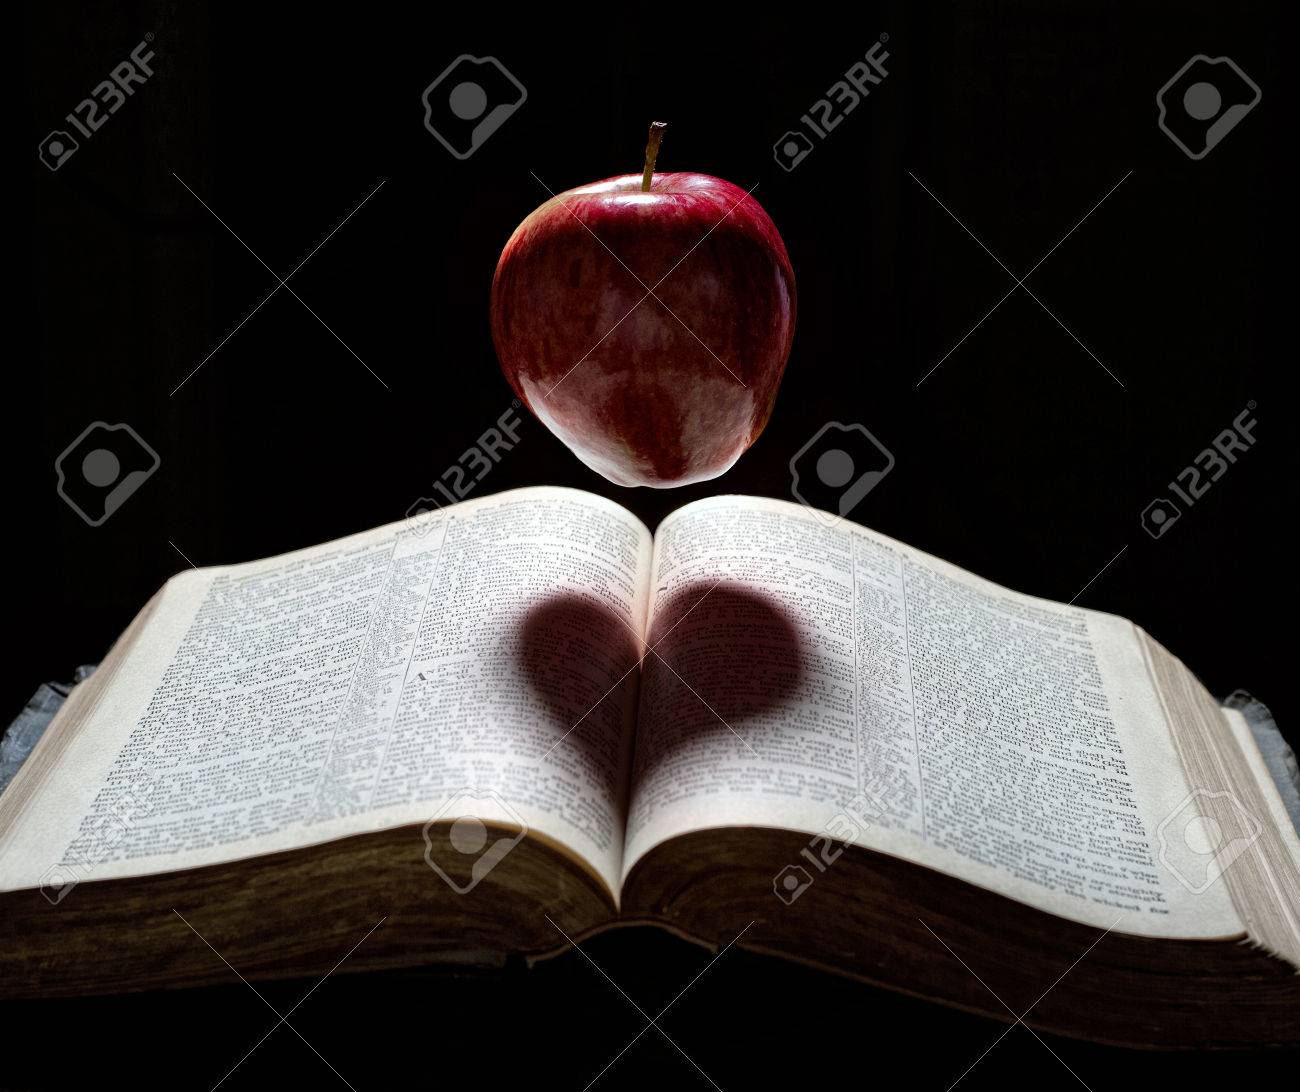 An apple floats above a Bible with a heart shadow. - 27594894